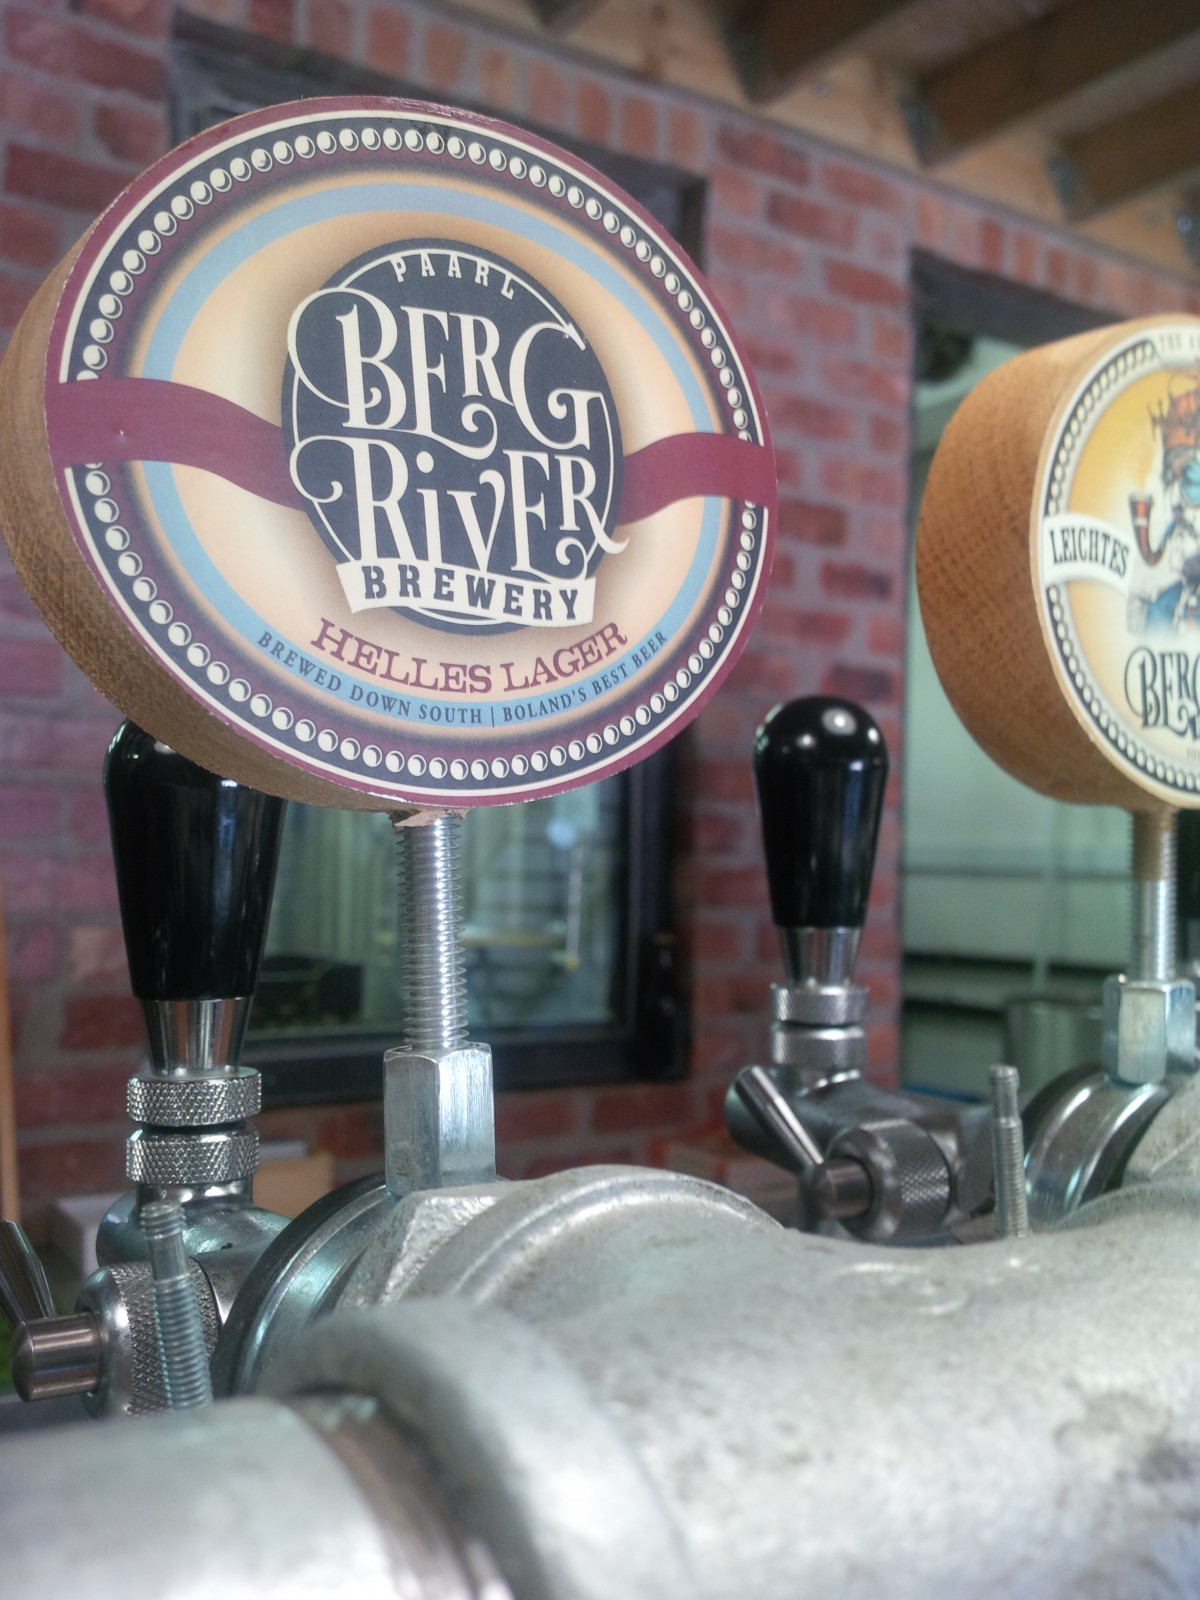 Taste what Jorg is brewing these days at Berg River in Paarl